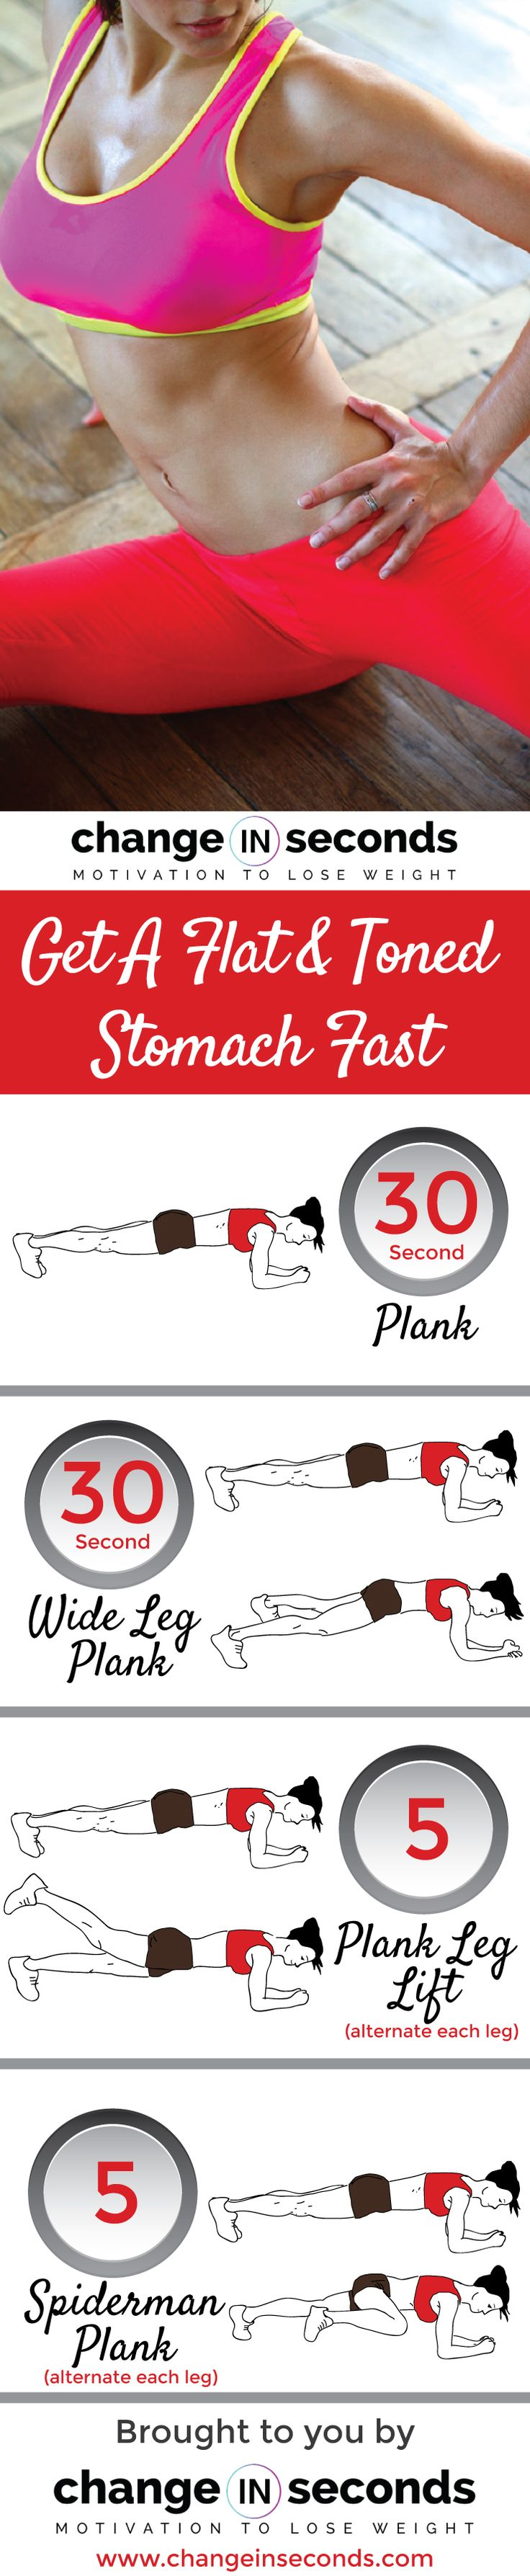 Get A Flat And Toned Stomach Fast (Download PDF) http://www.changeinseconds.com/get-a-flat-and-toned-stomach-fast/